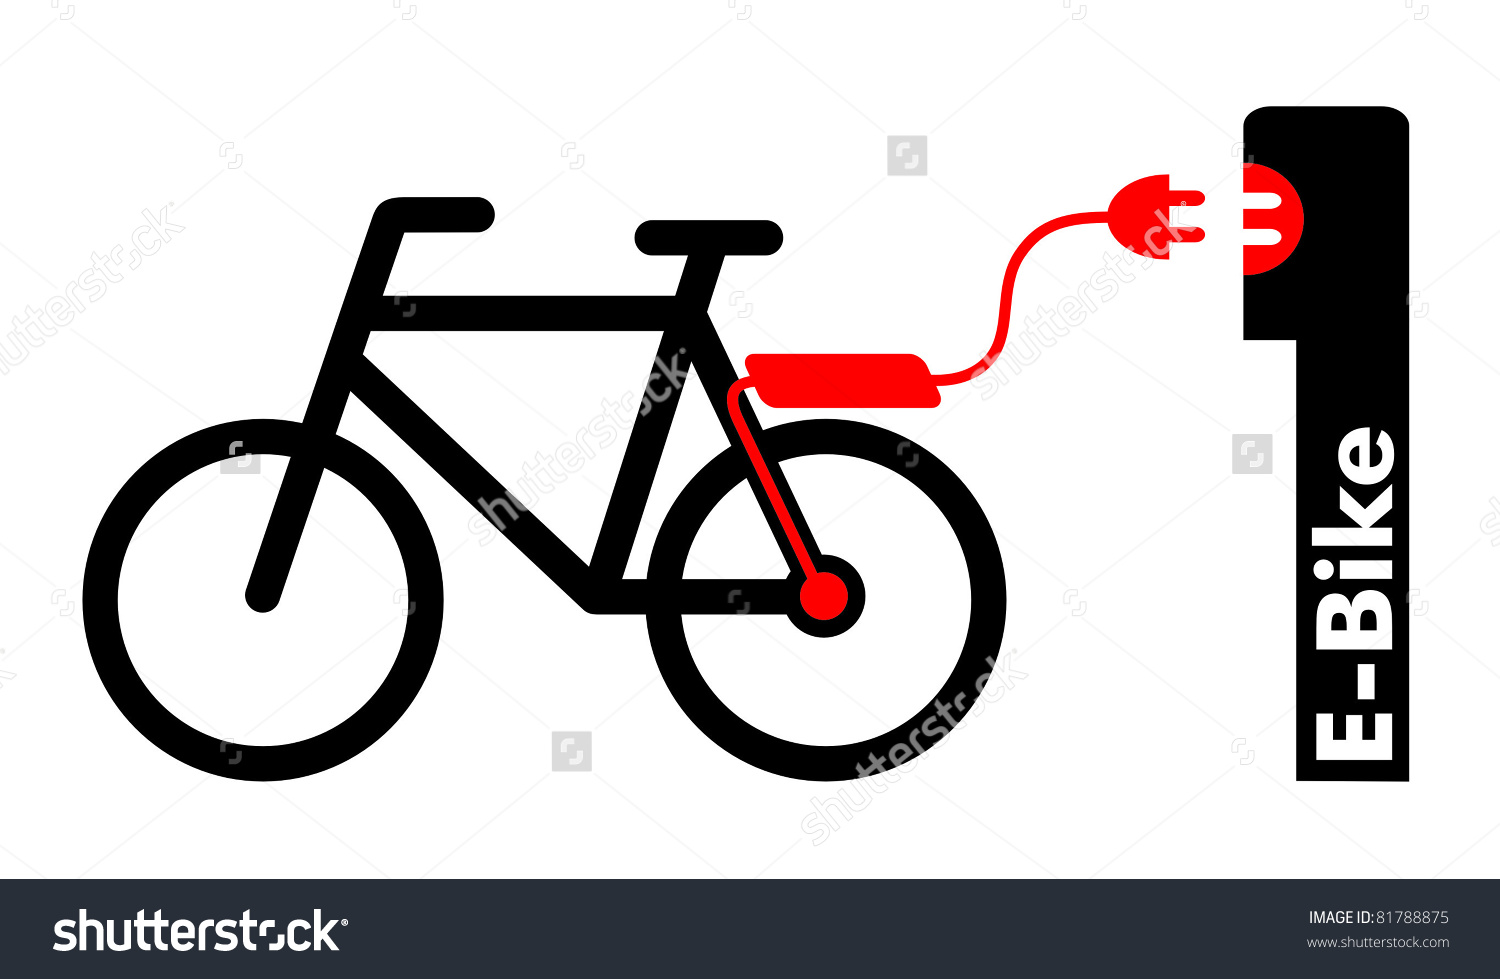 Symbol Electricassist Bicycle Ebike Stock Illustration 81788875.